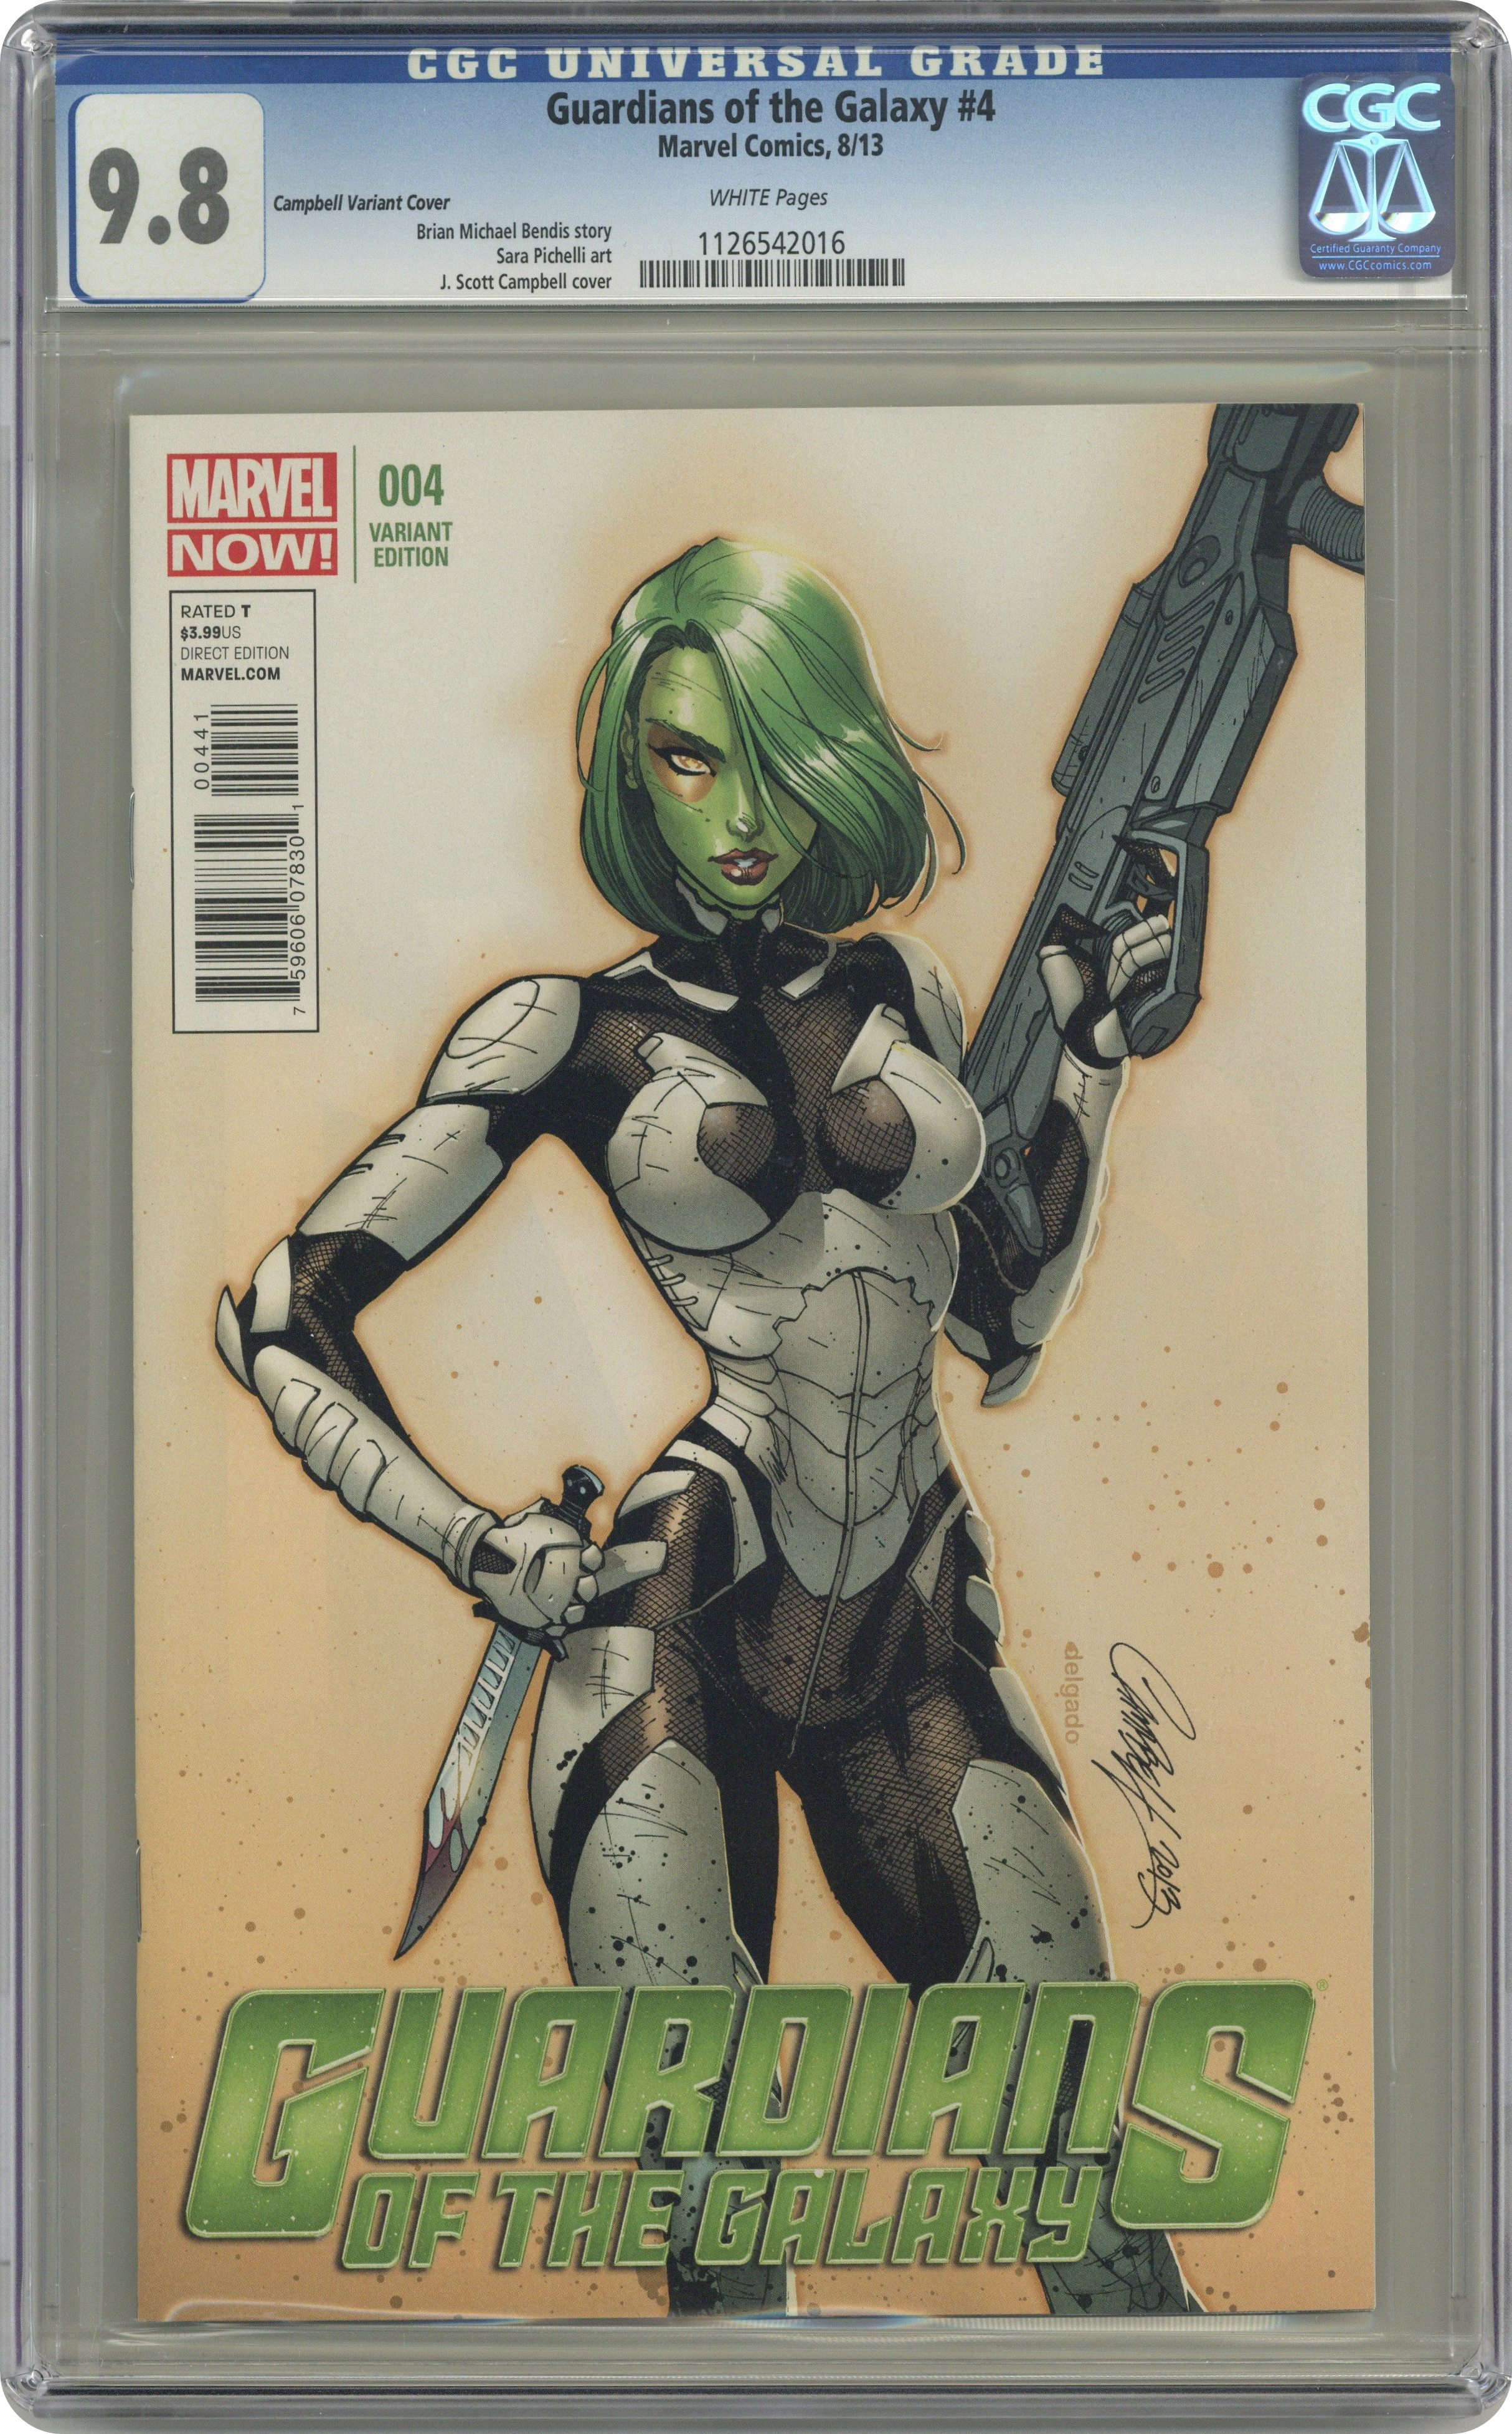 GAMORA #1A SIGNED BY J SCOTT CAMPBELL ~ Marvel Comics Guardians of the Galaxy